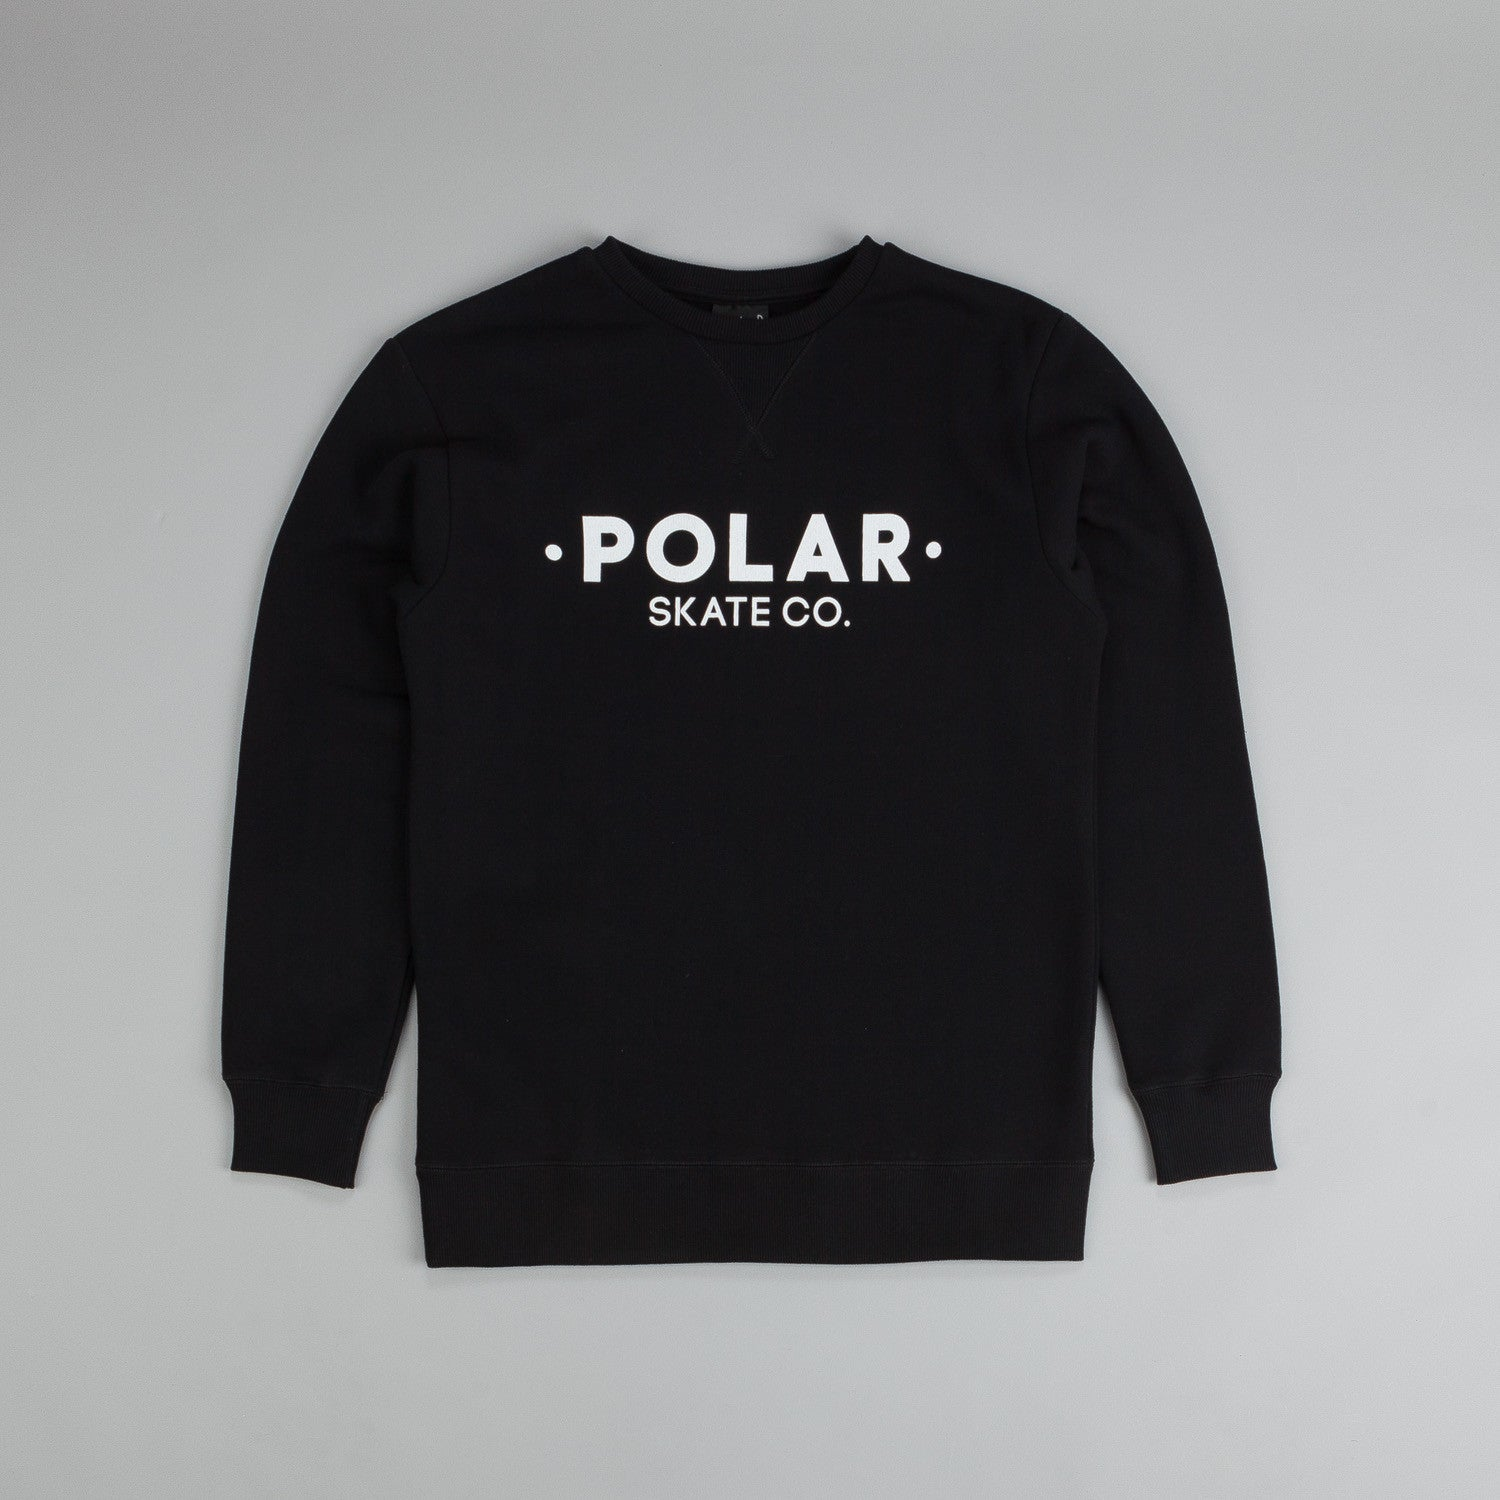 Polar Default Sweatshirt Black / White